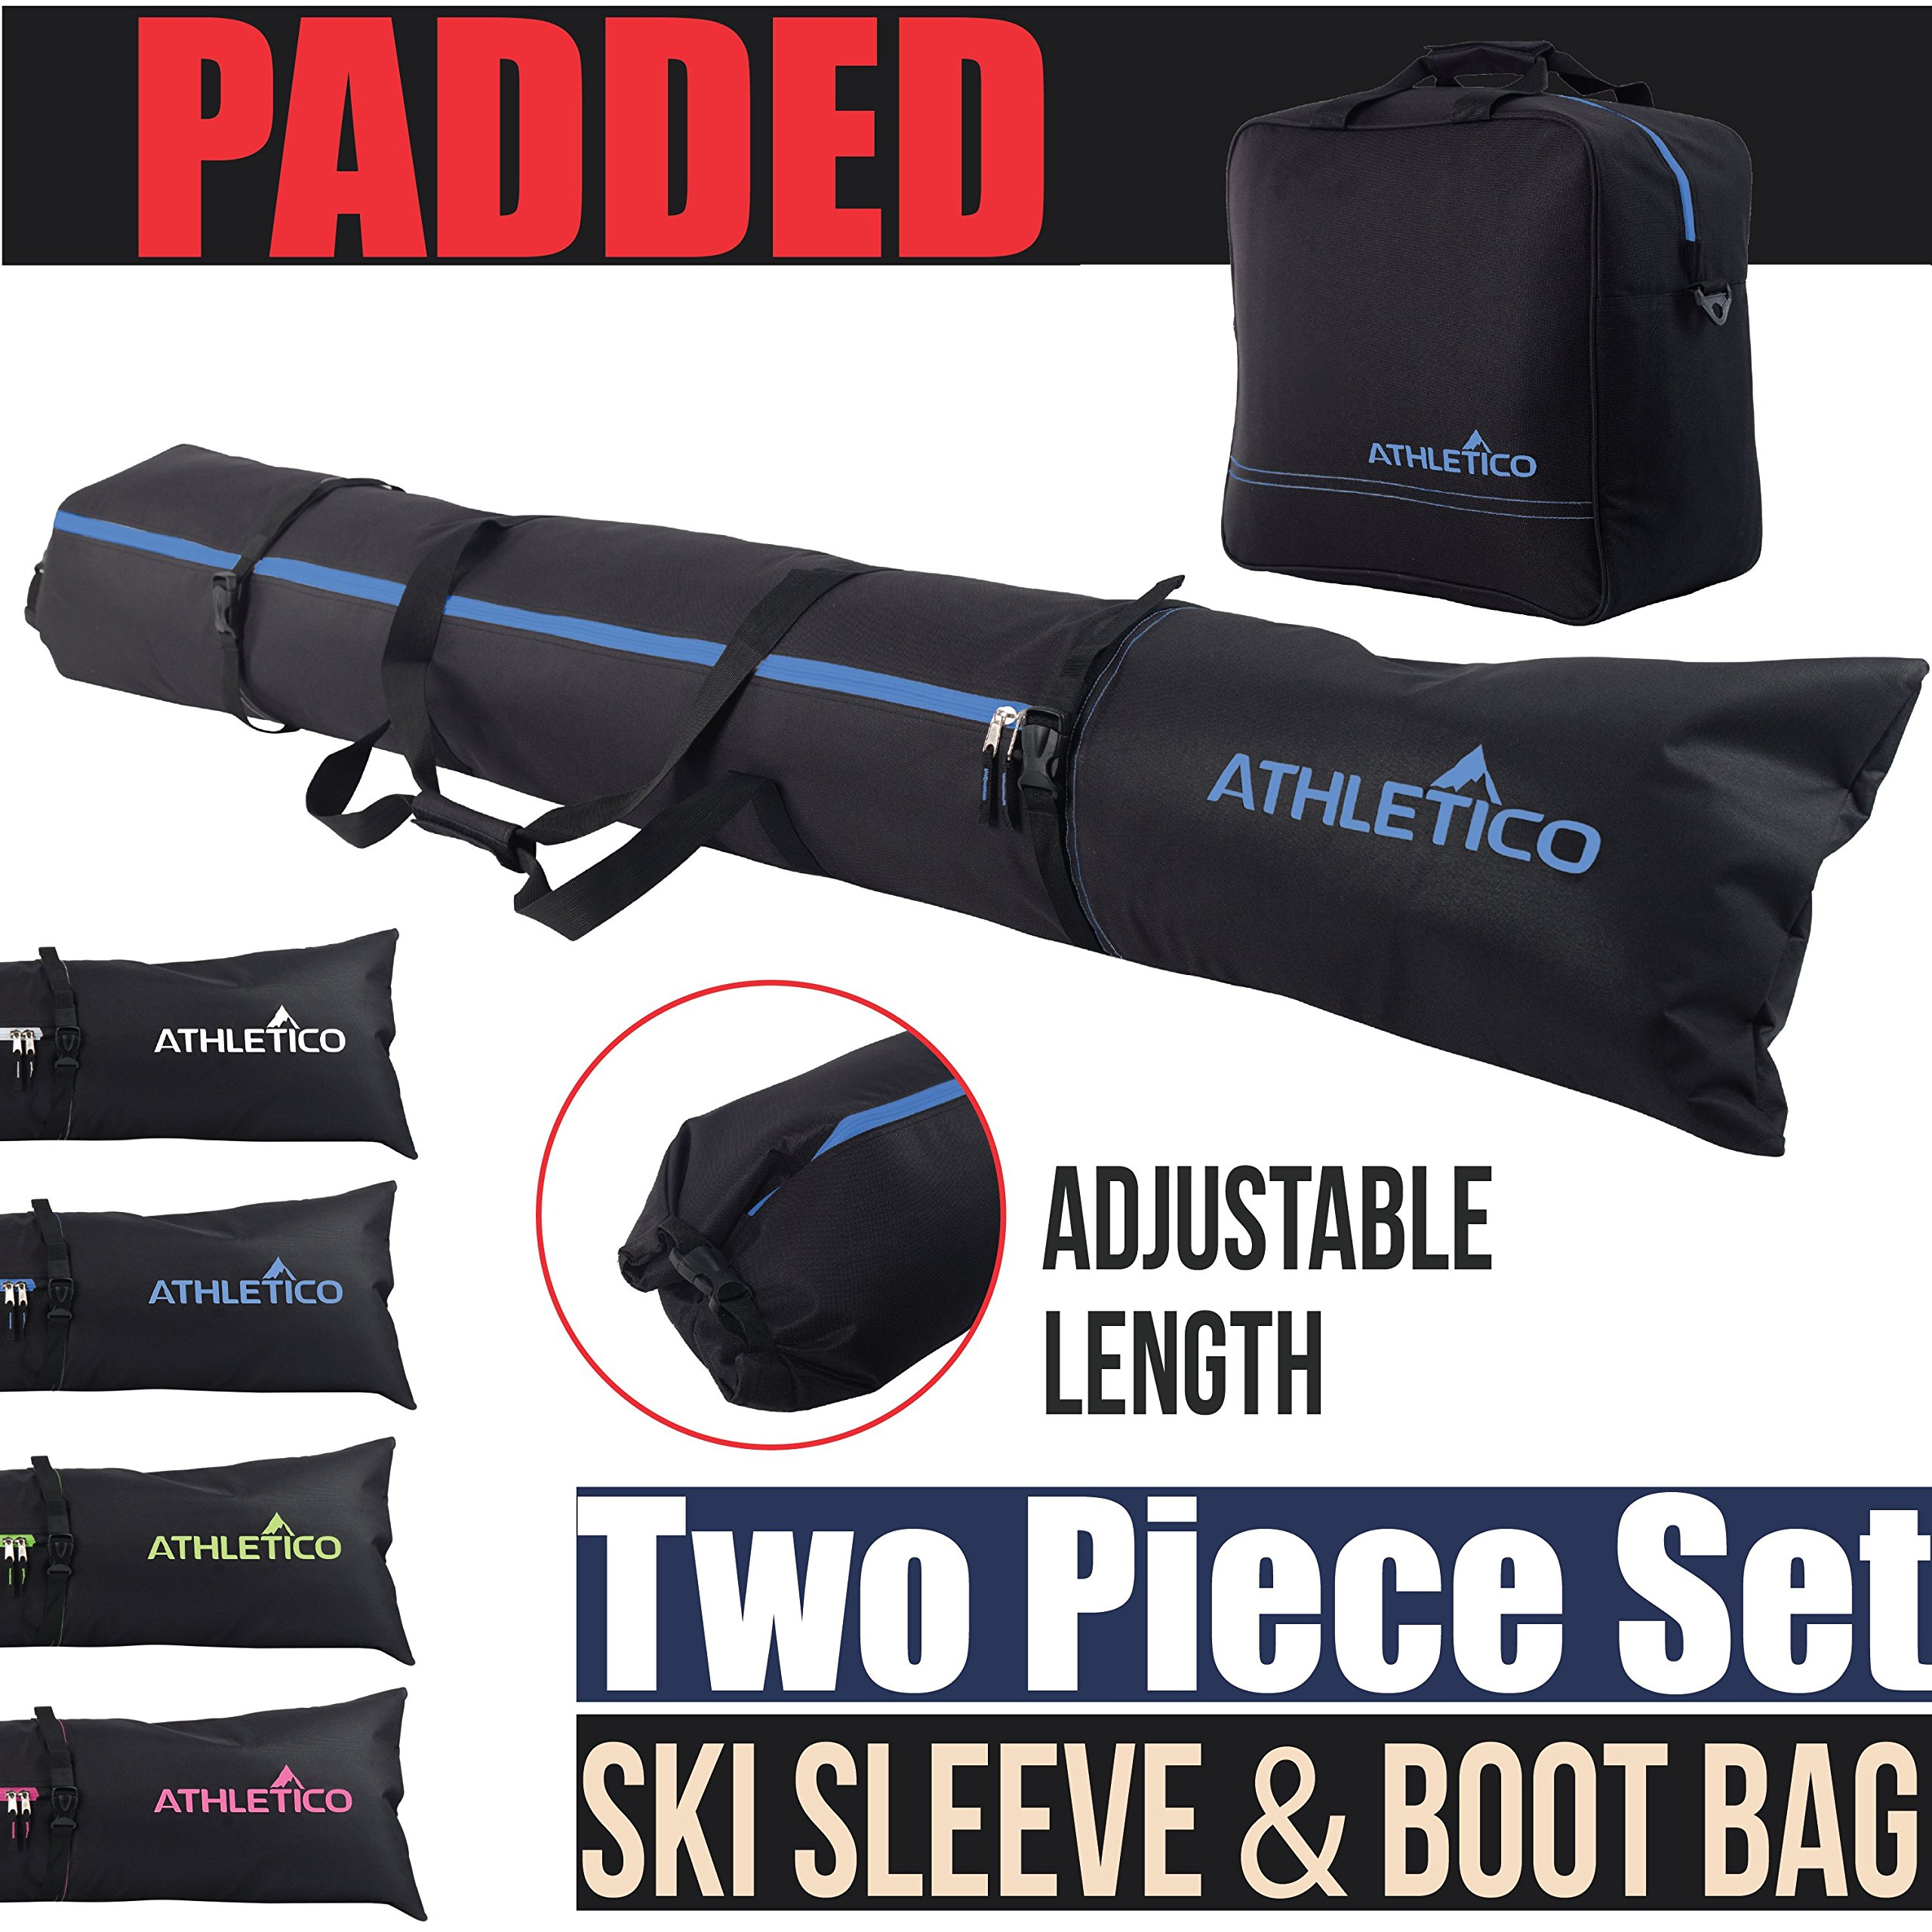 Athletico Padded Two-Piece Ski and Boot Bag Combo | Store & Transport Skis Up to 200 cm and Boots Up to Size 13 | Includes 1 Padded Ski Bag & 1 Padded Ski Boot Bag (Black with Blue Trim (Padded)) by Athletico